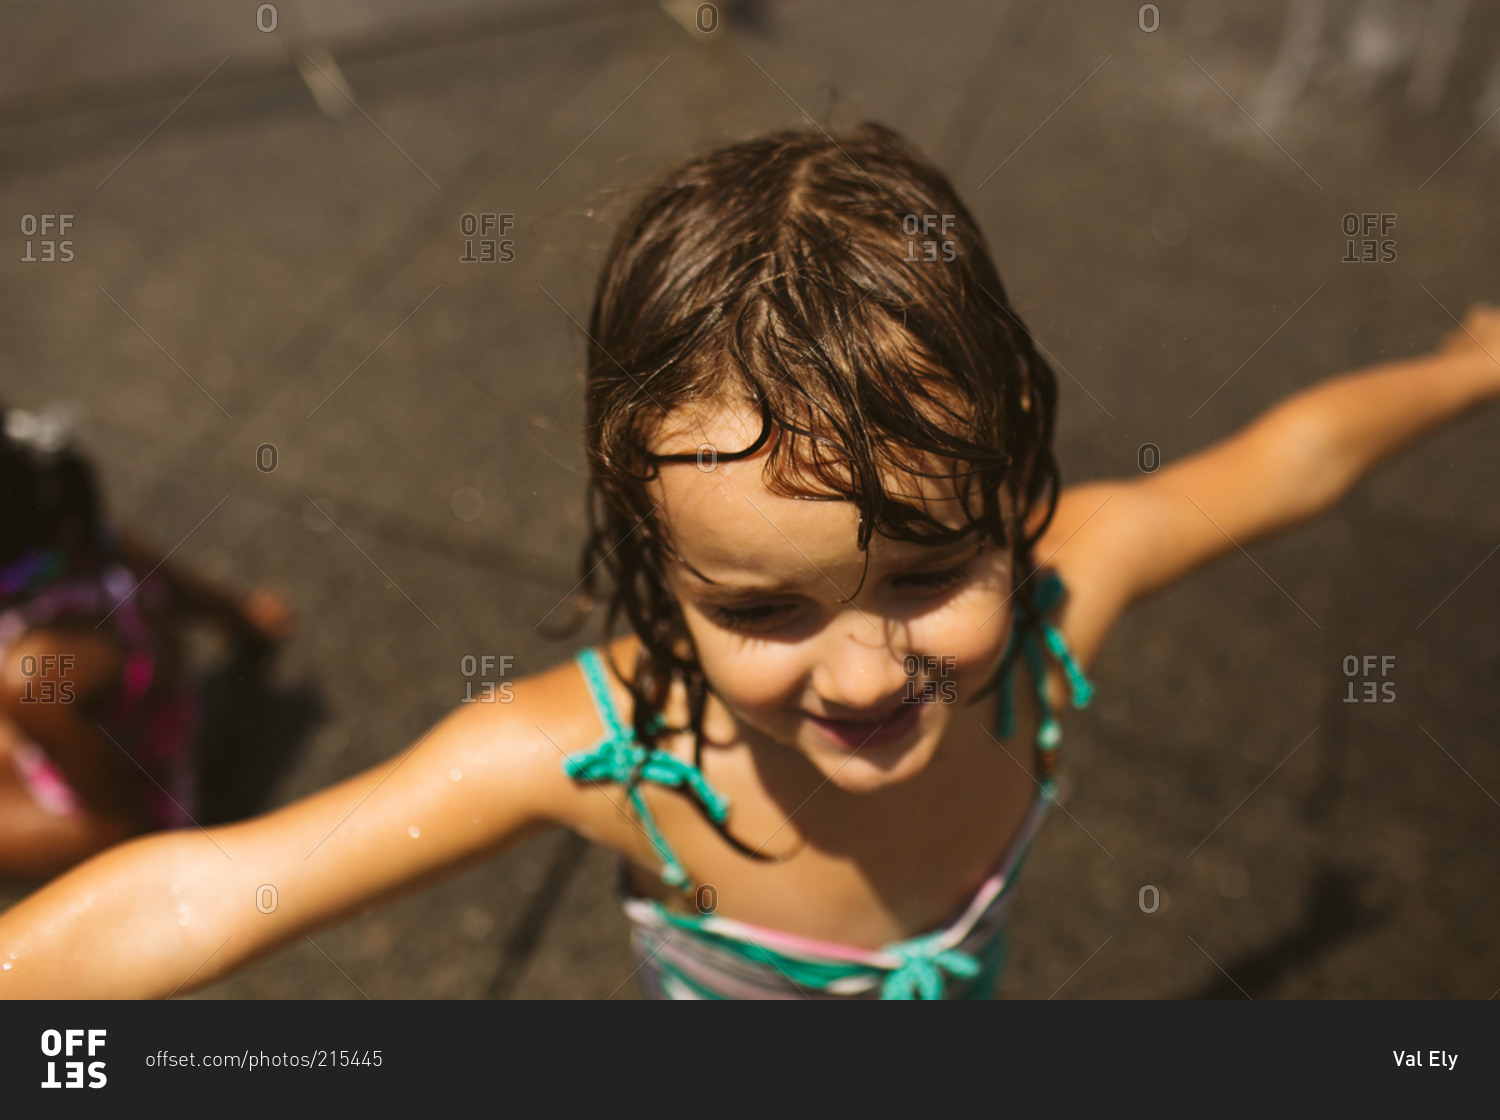 portrait of a brunette girl with wet hair stock photo - offset